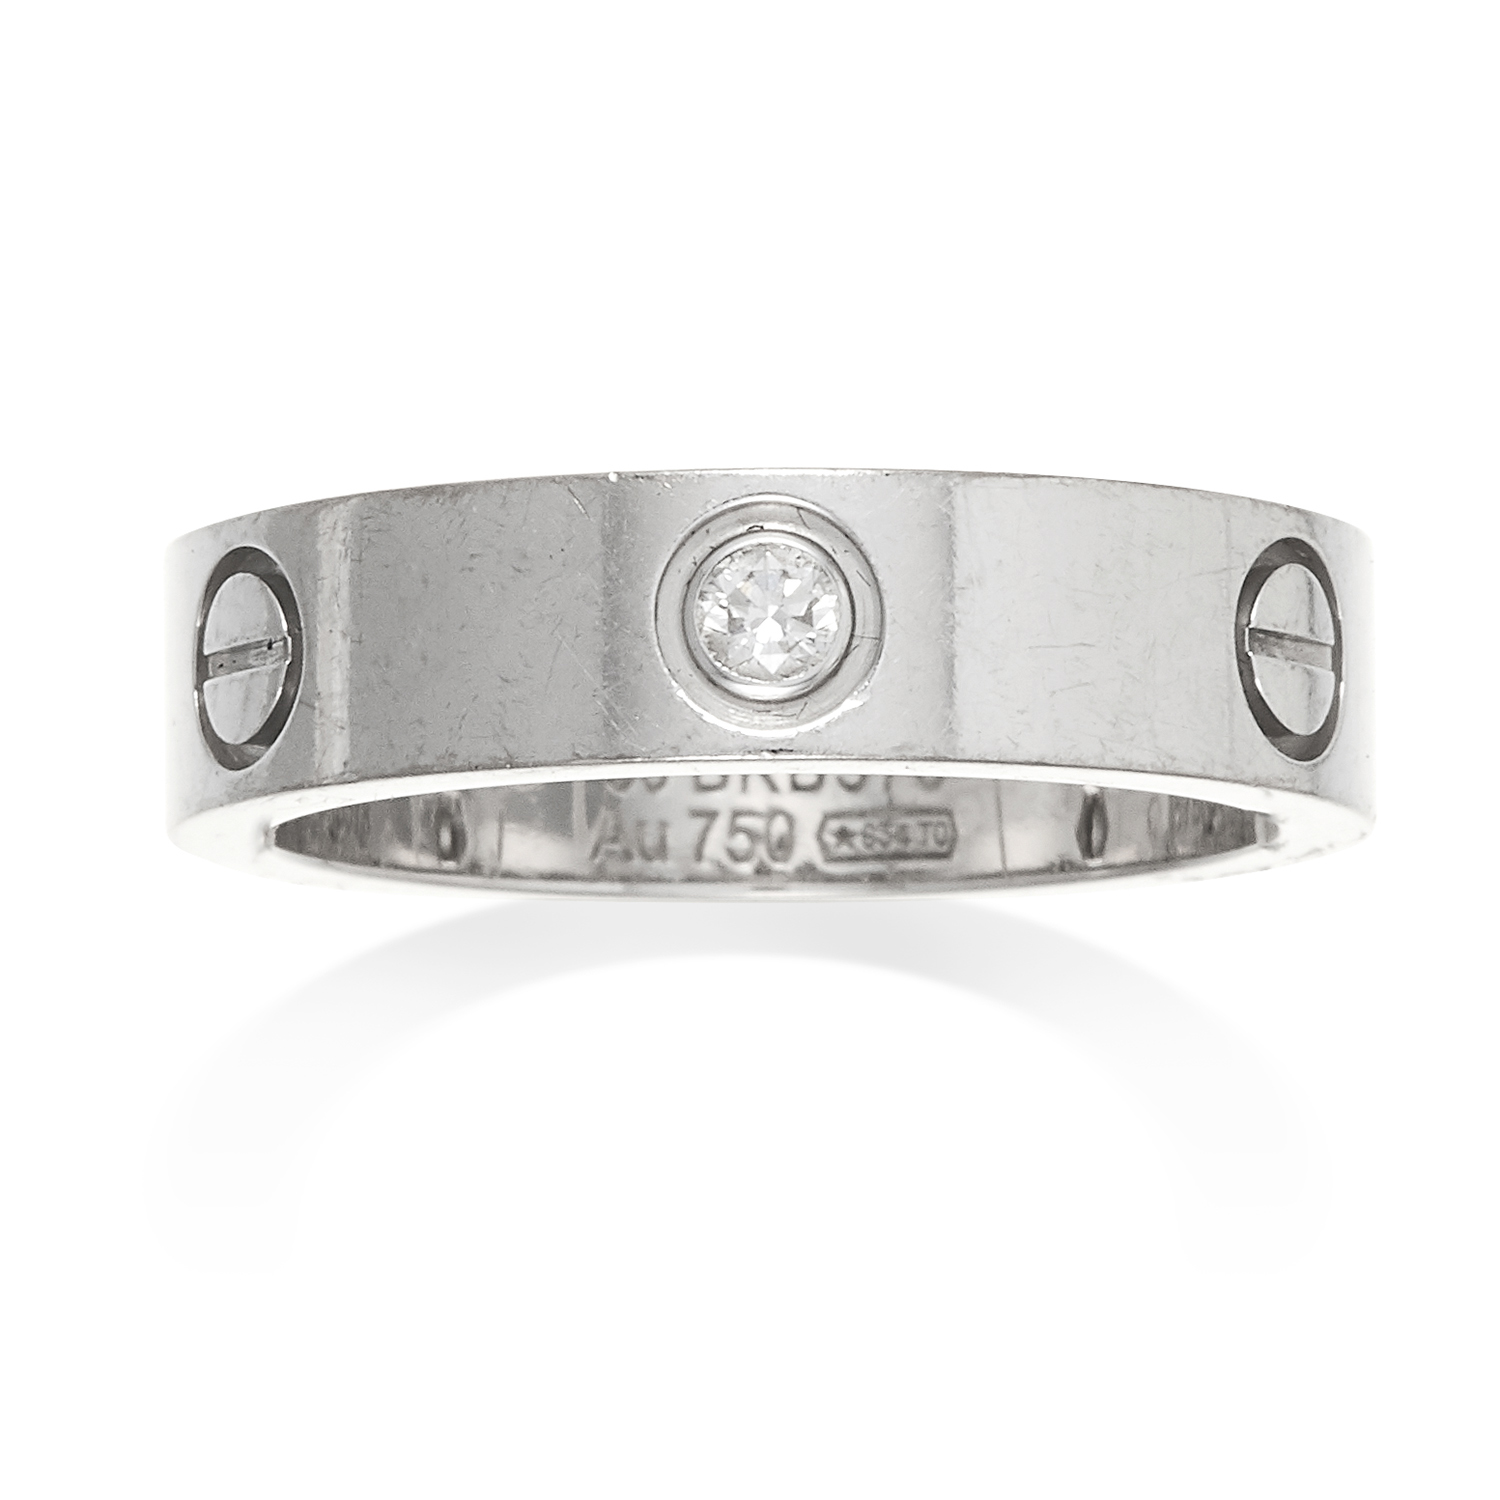 A DIAMOND LOVE RING, CARTIER in 18ct white gold, punctuated with screw head motifs, three jewelled